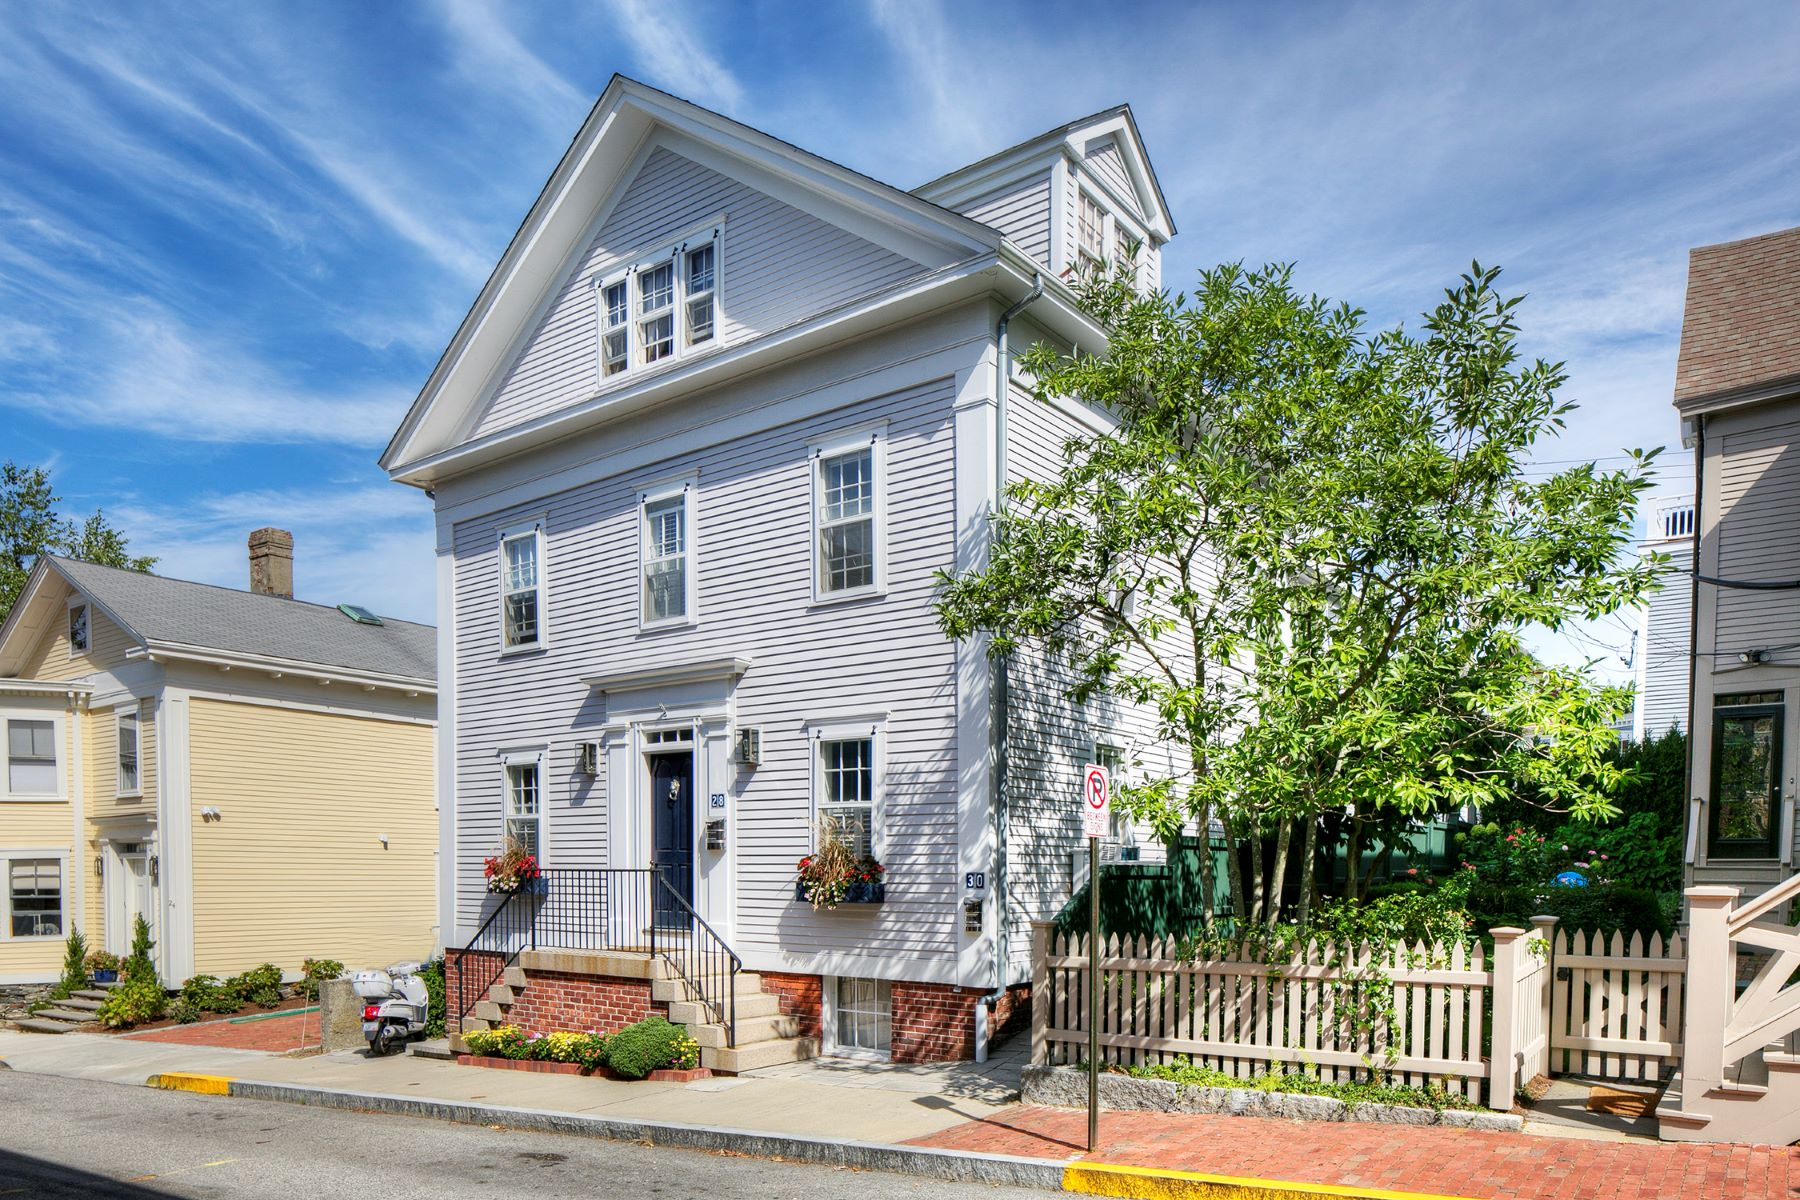 Single Family Homes for Sale at Greek Revival with Legal Apartment 28 30 John Street Newport, Rhode Island 02840 United States